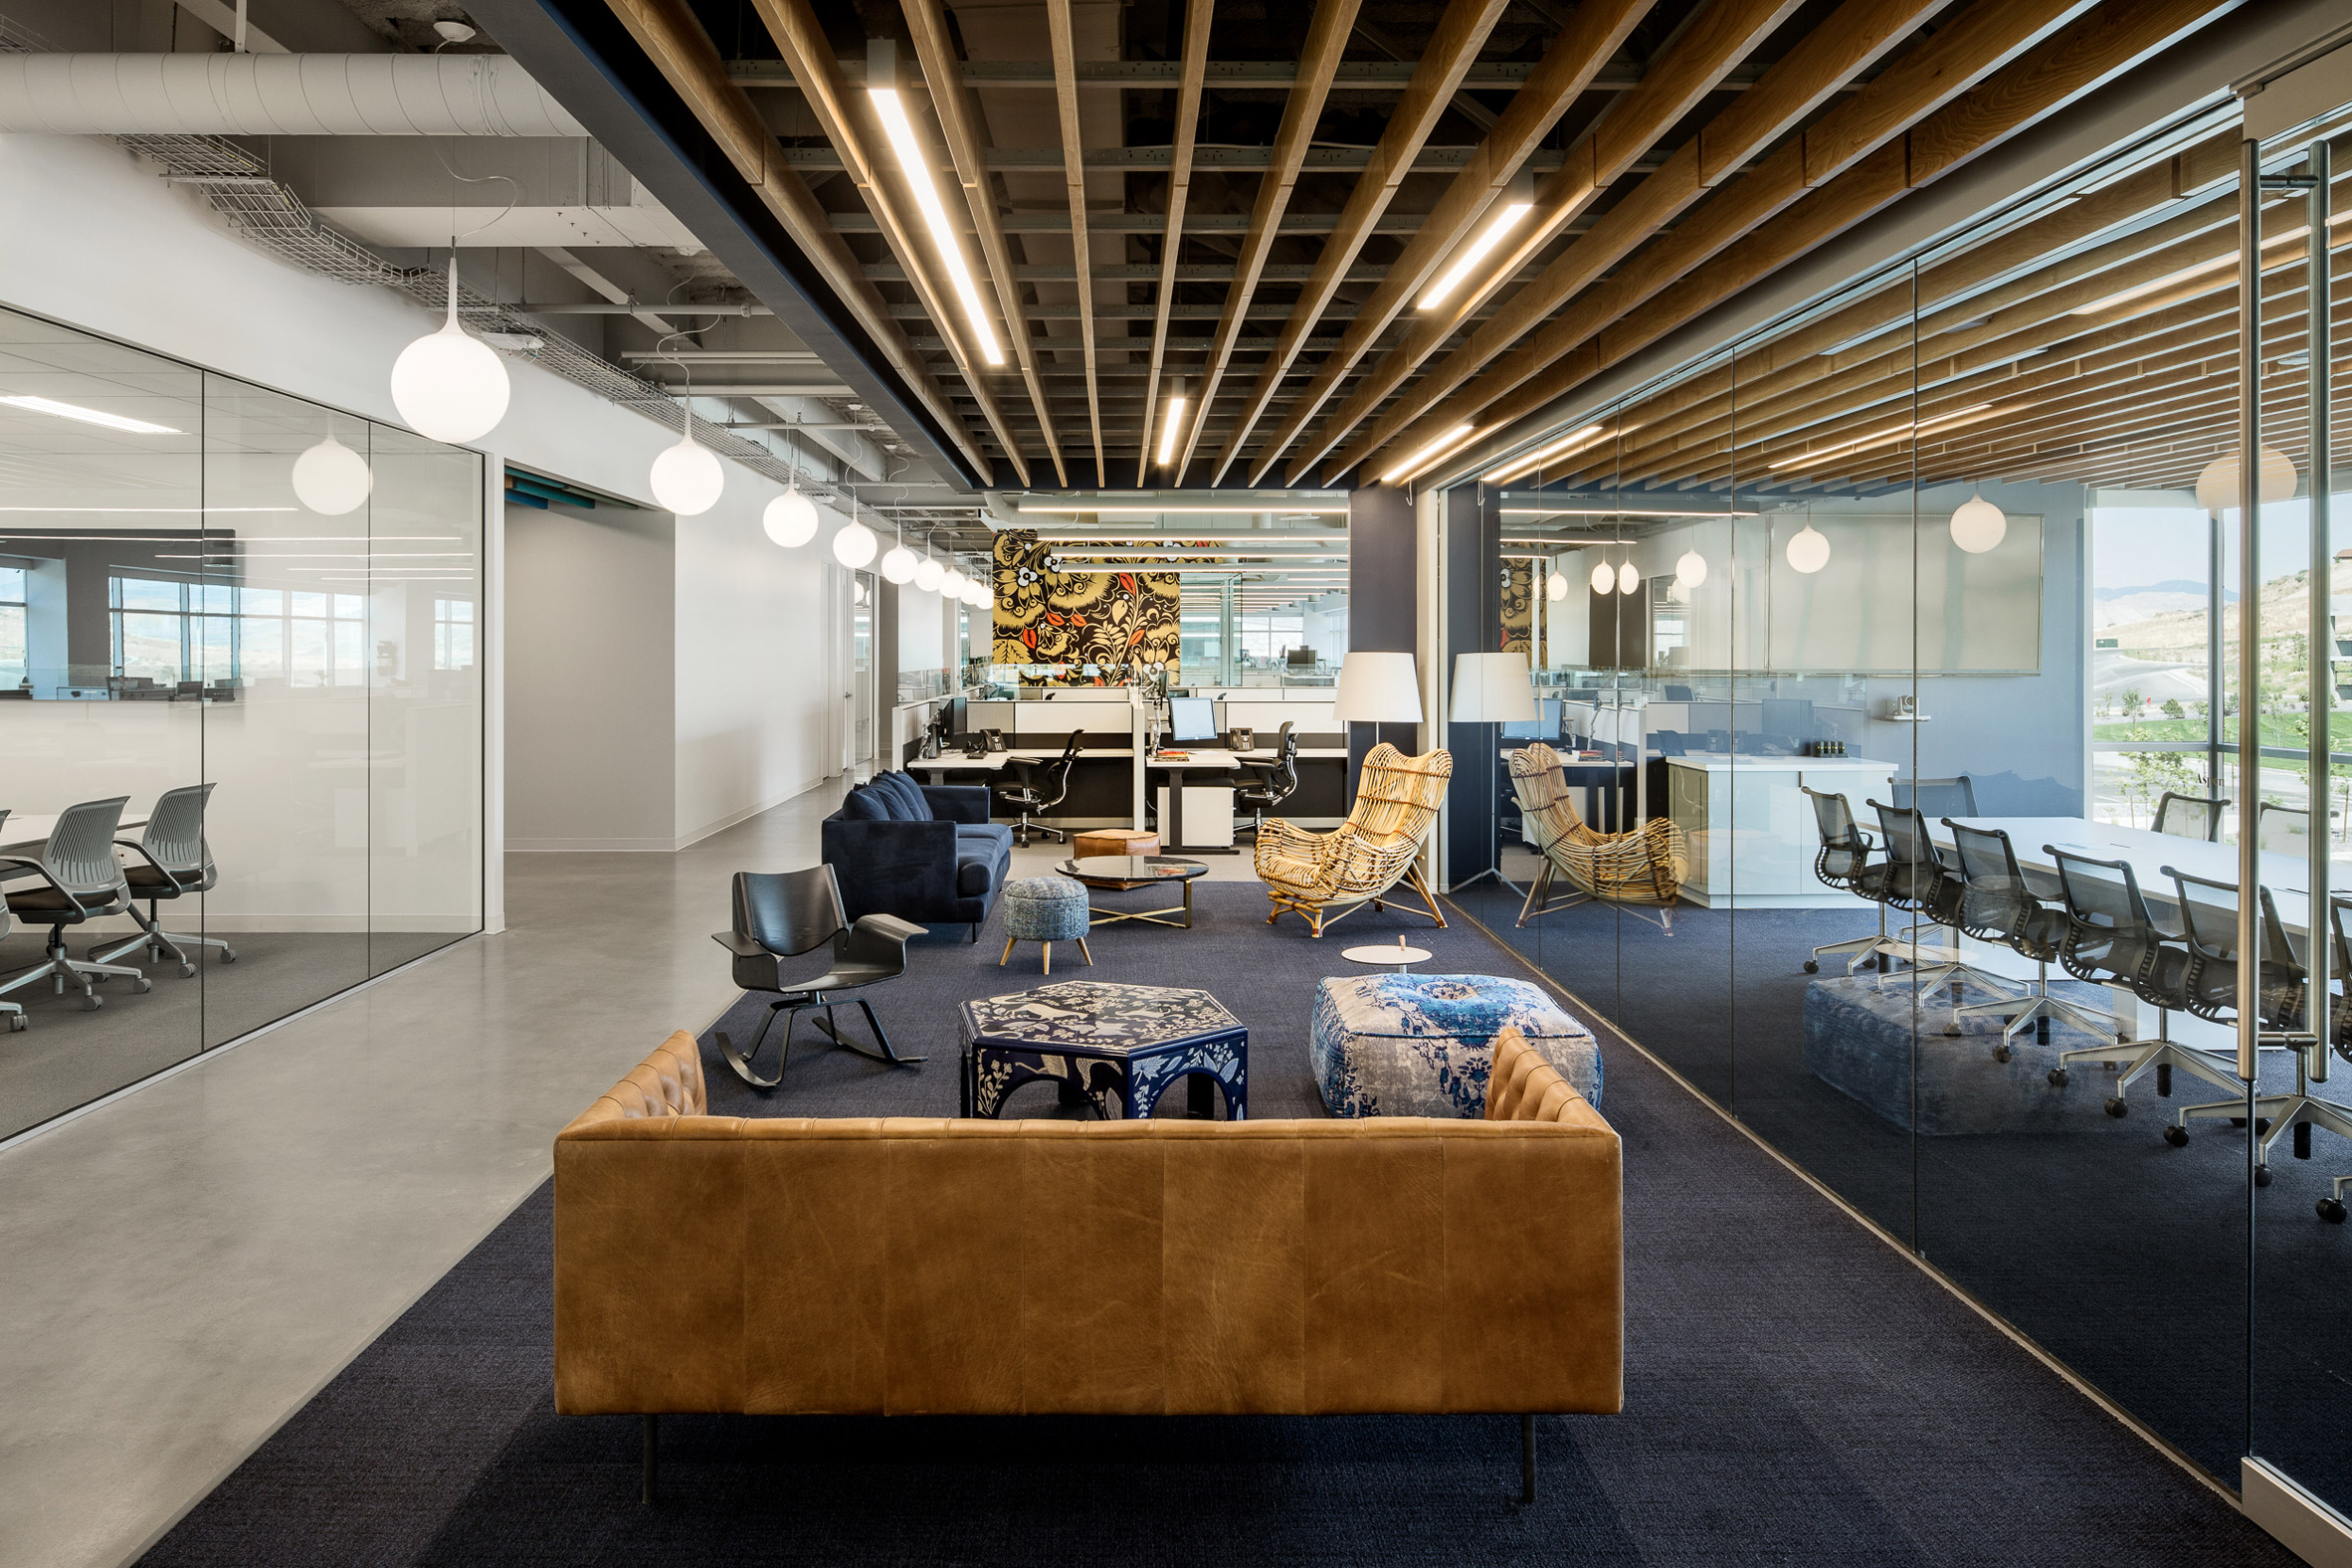 ancestry-office-rapt-studio-usa-interiors_dezeen_2364_col_4